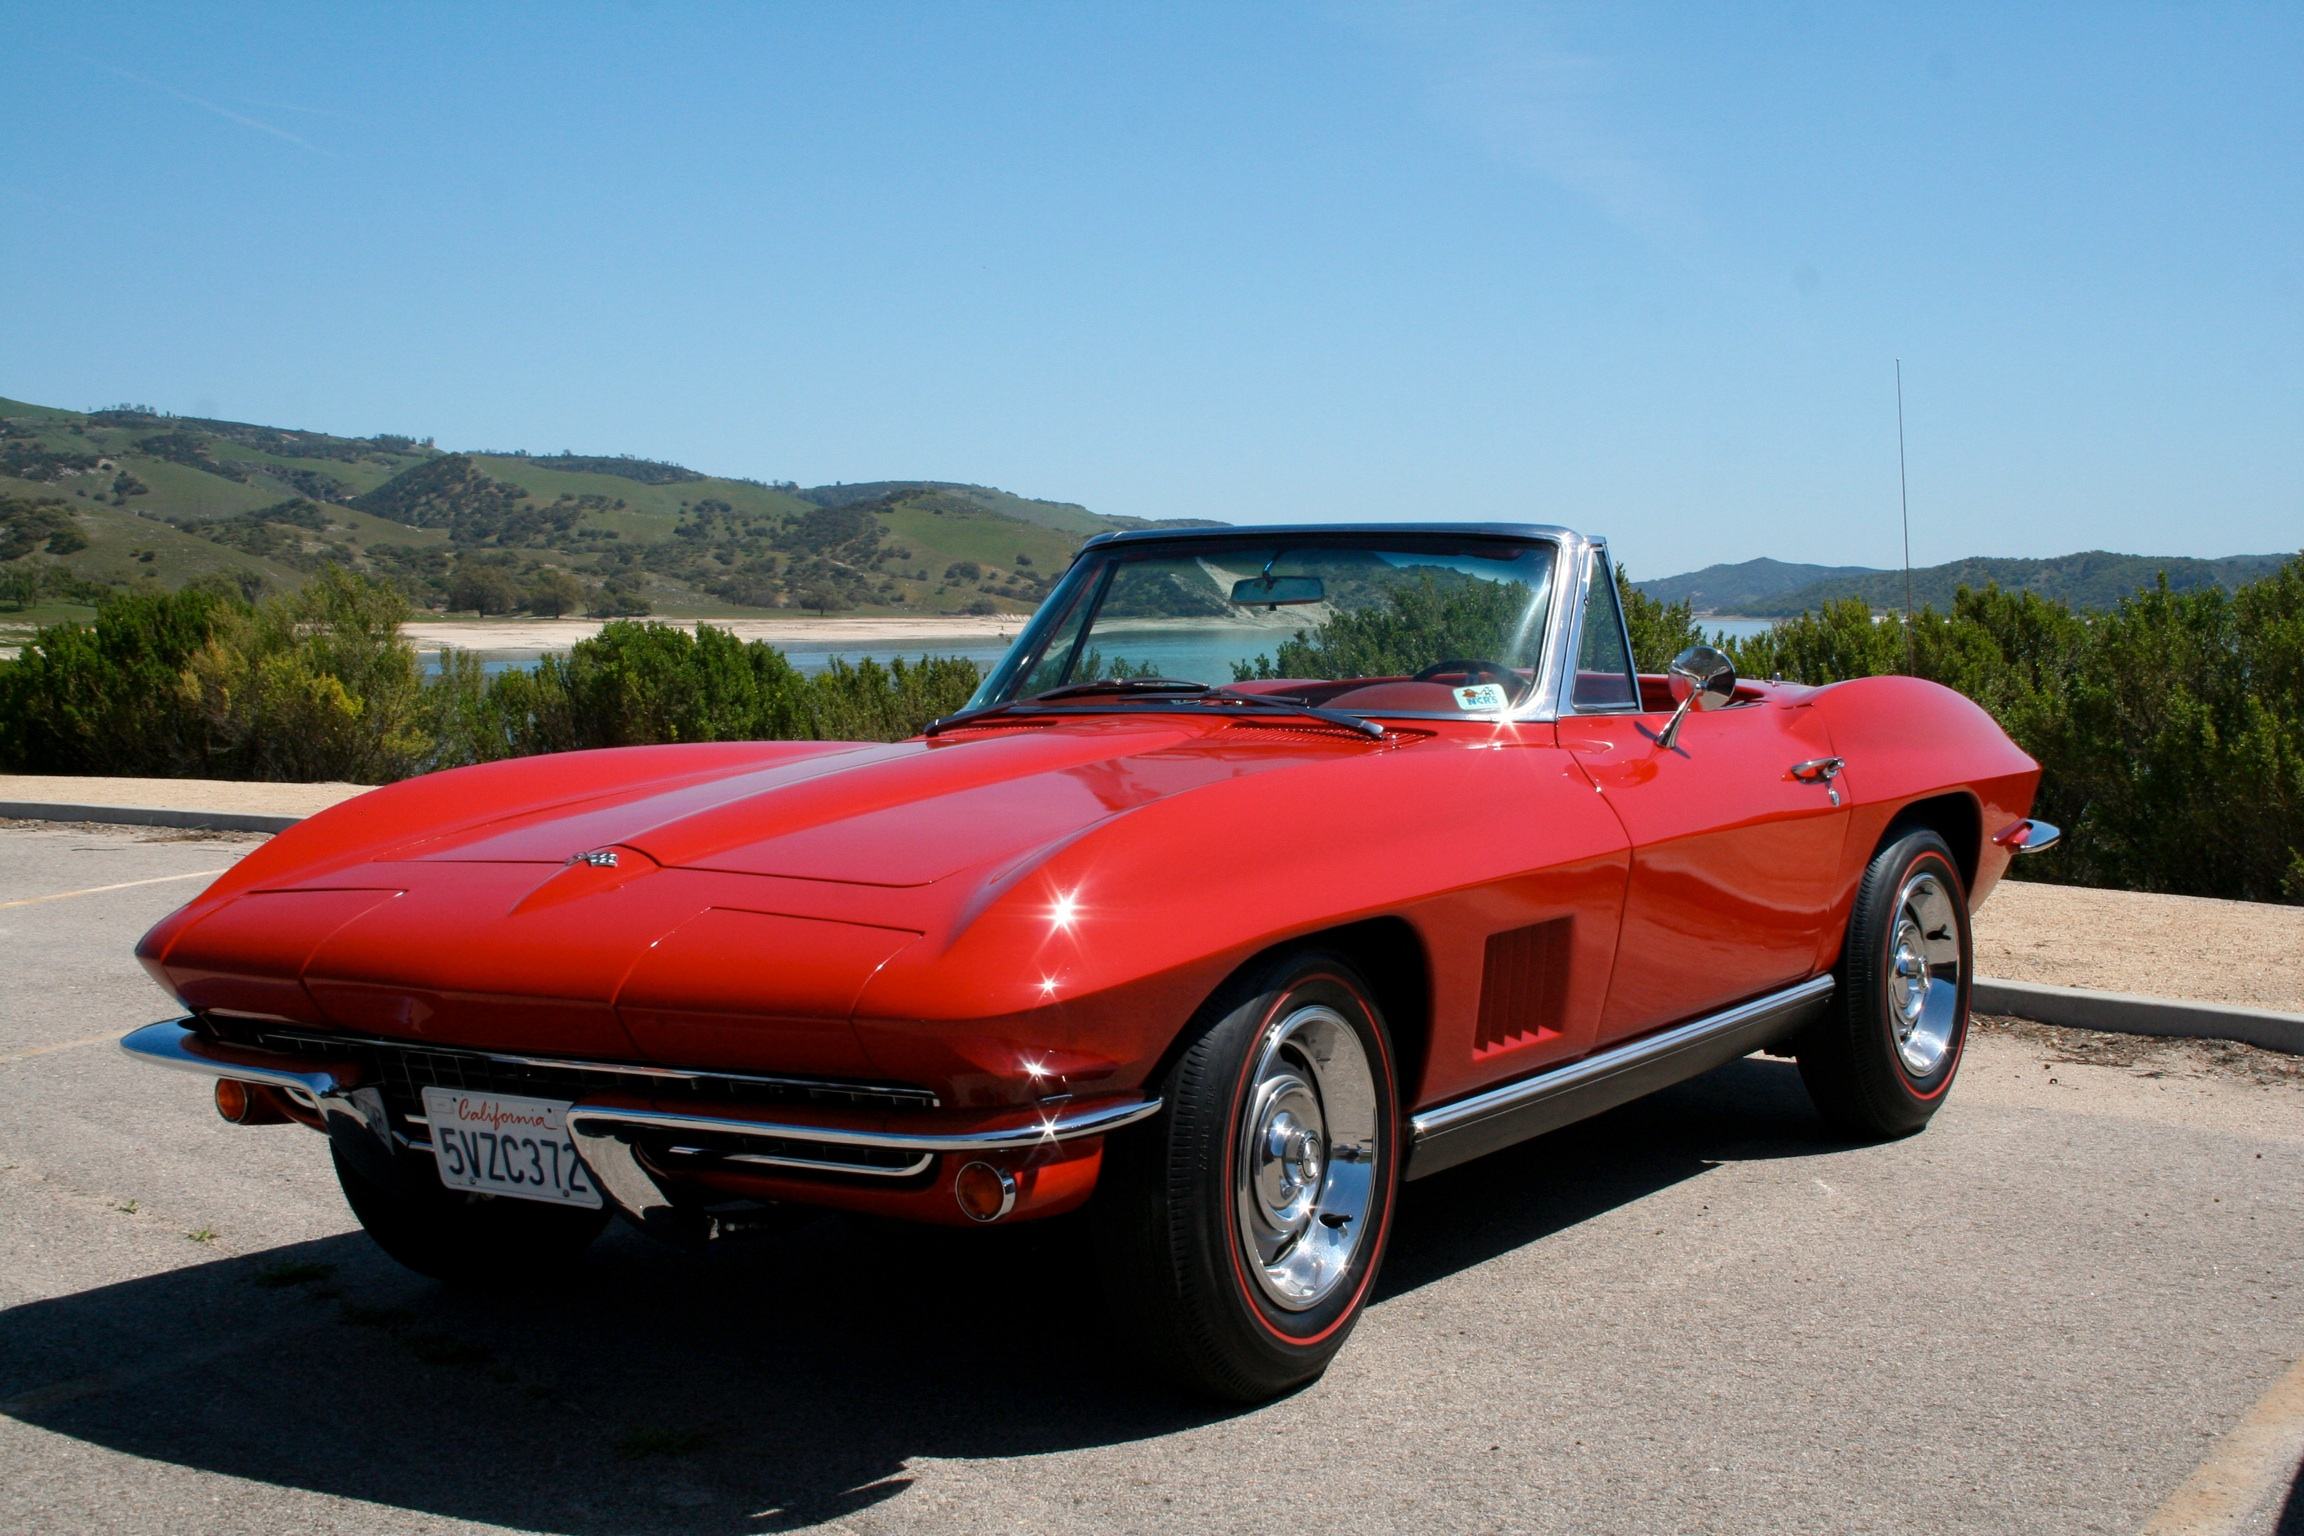 Ron Bartow's '67 convertible.